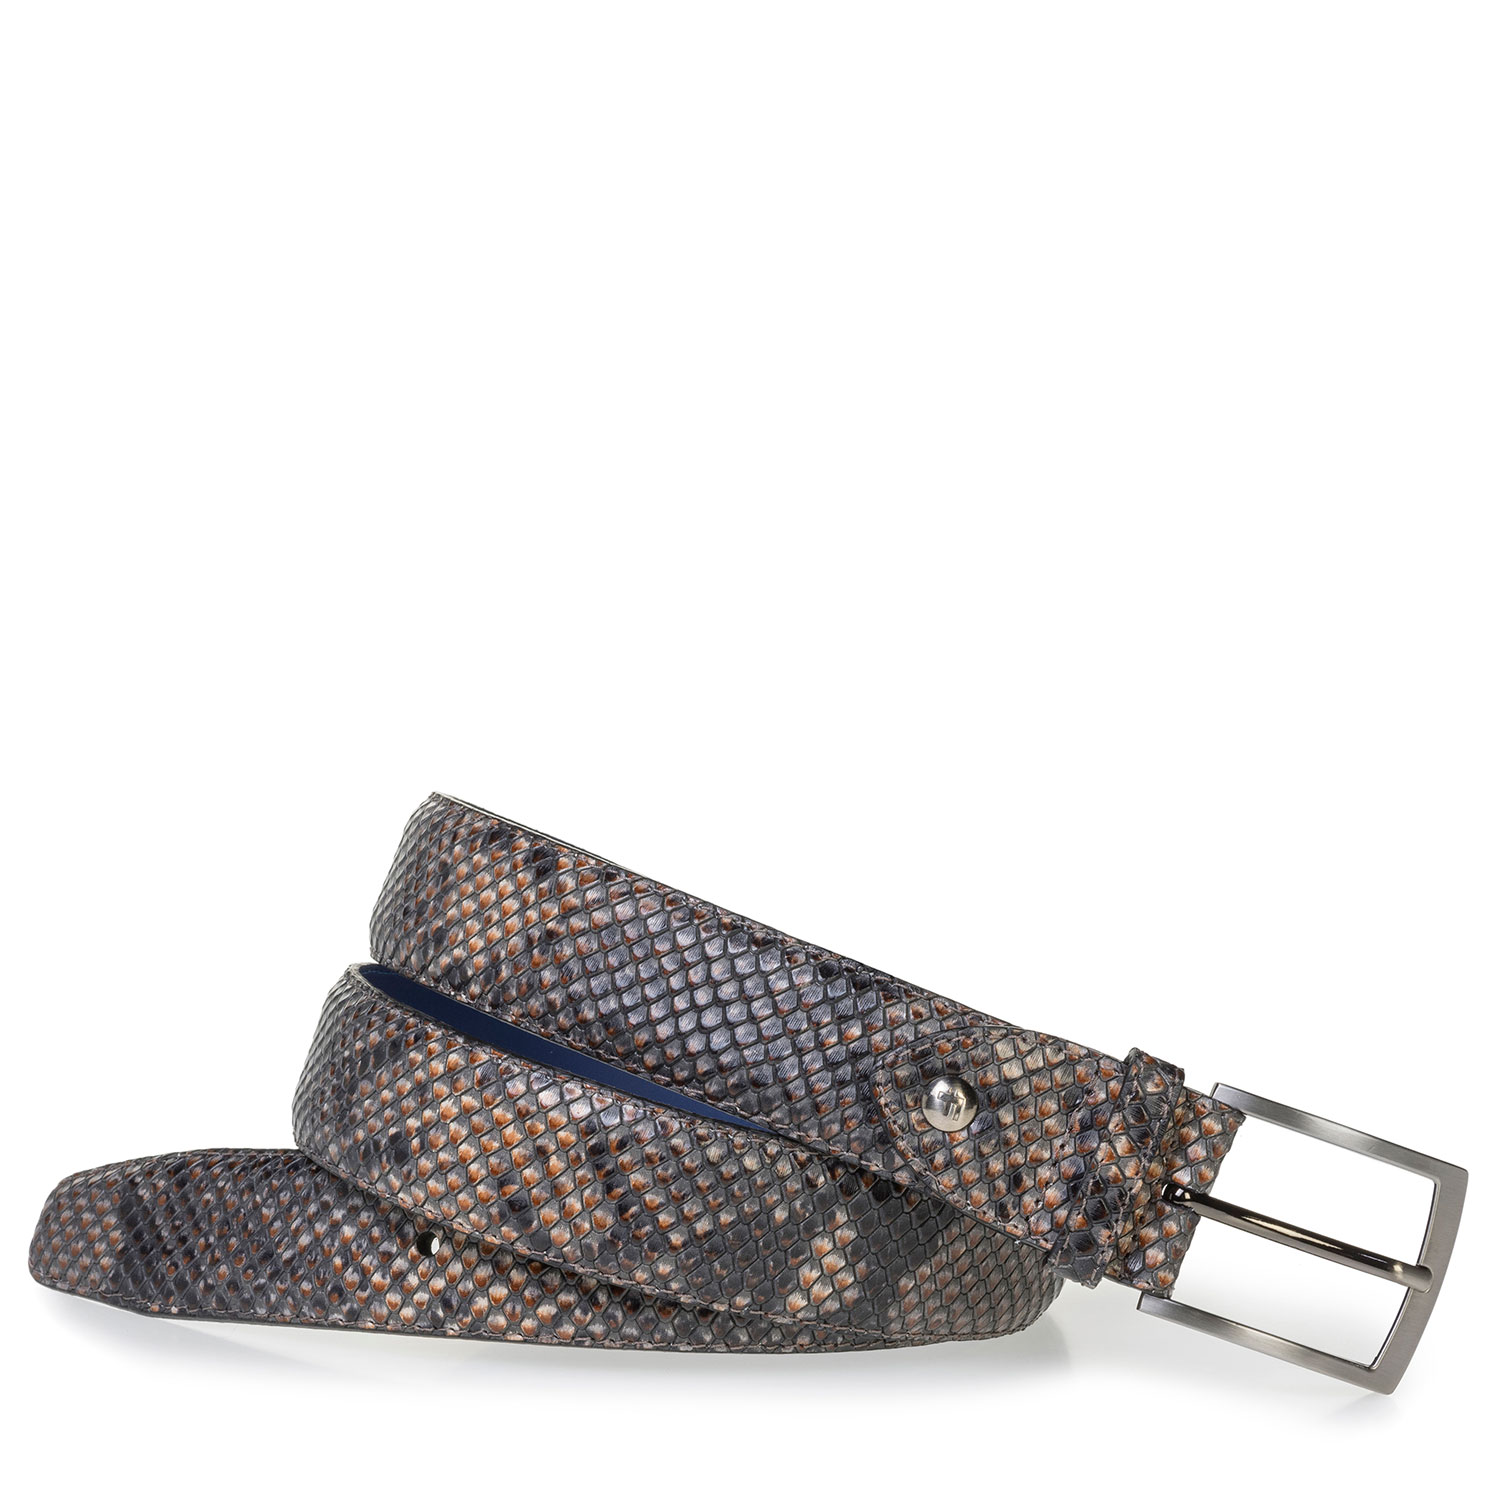 75200/90 - Brown leather belt with snake print